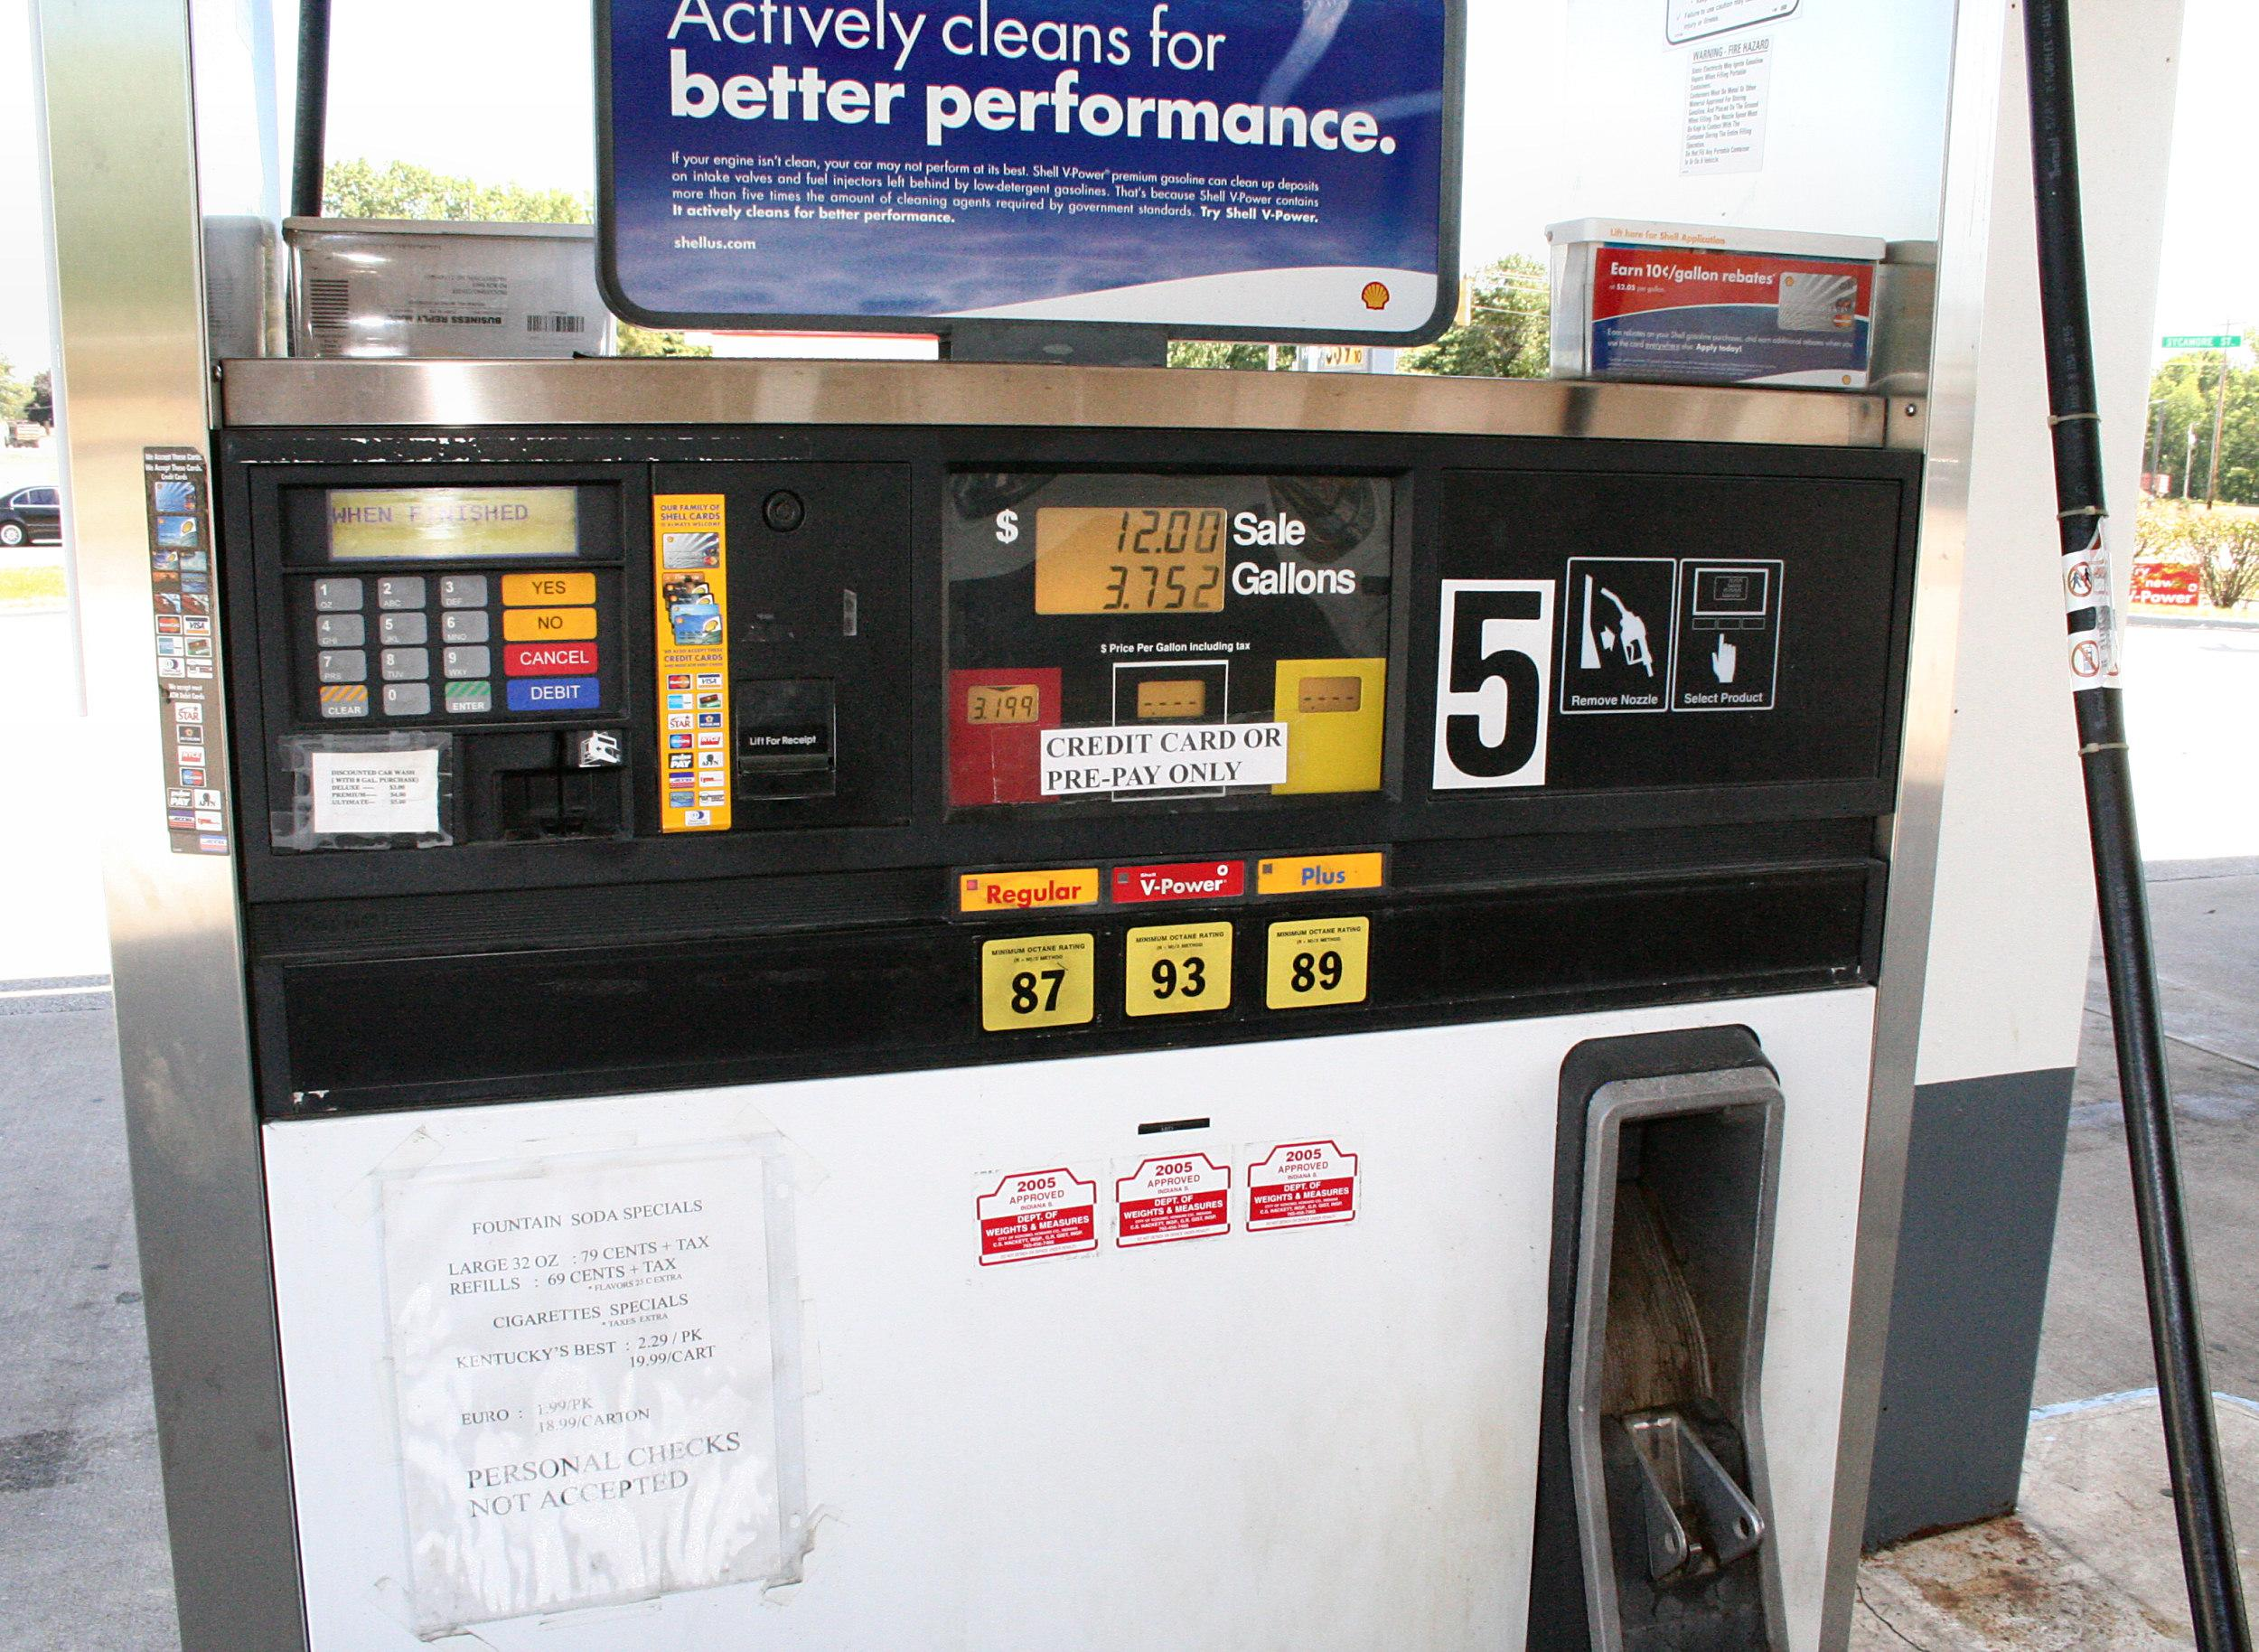 U.S. Gas Stations May Be Ripe for Hacking